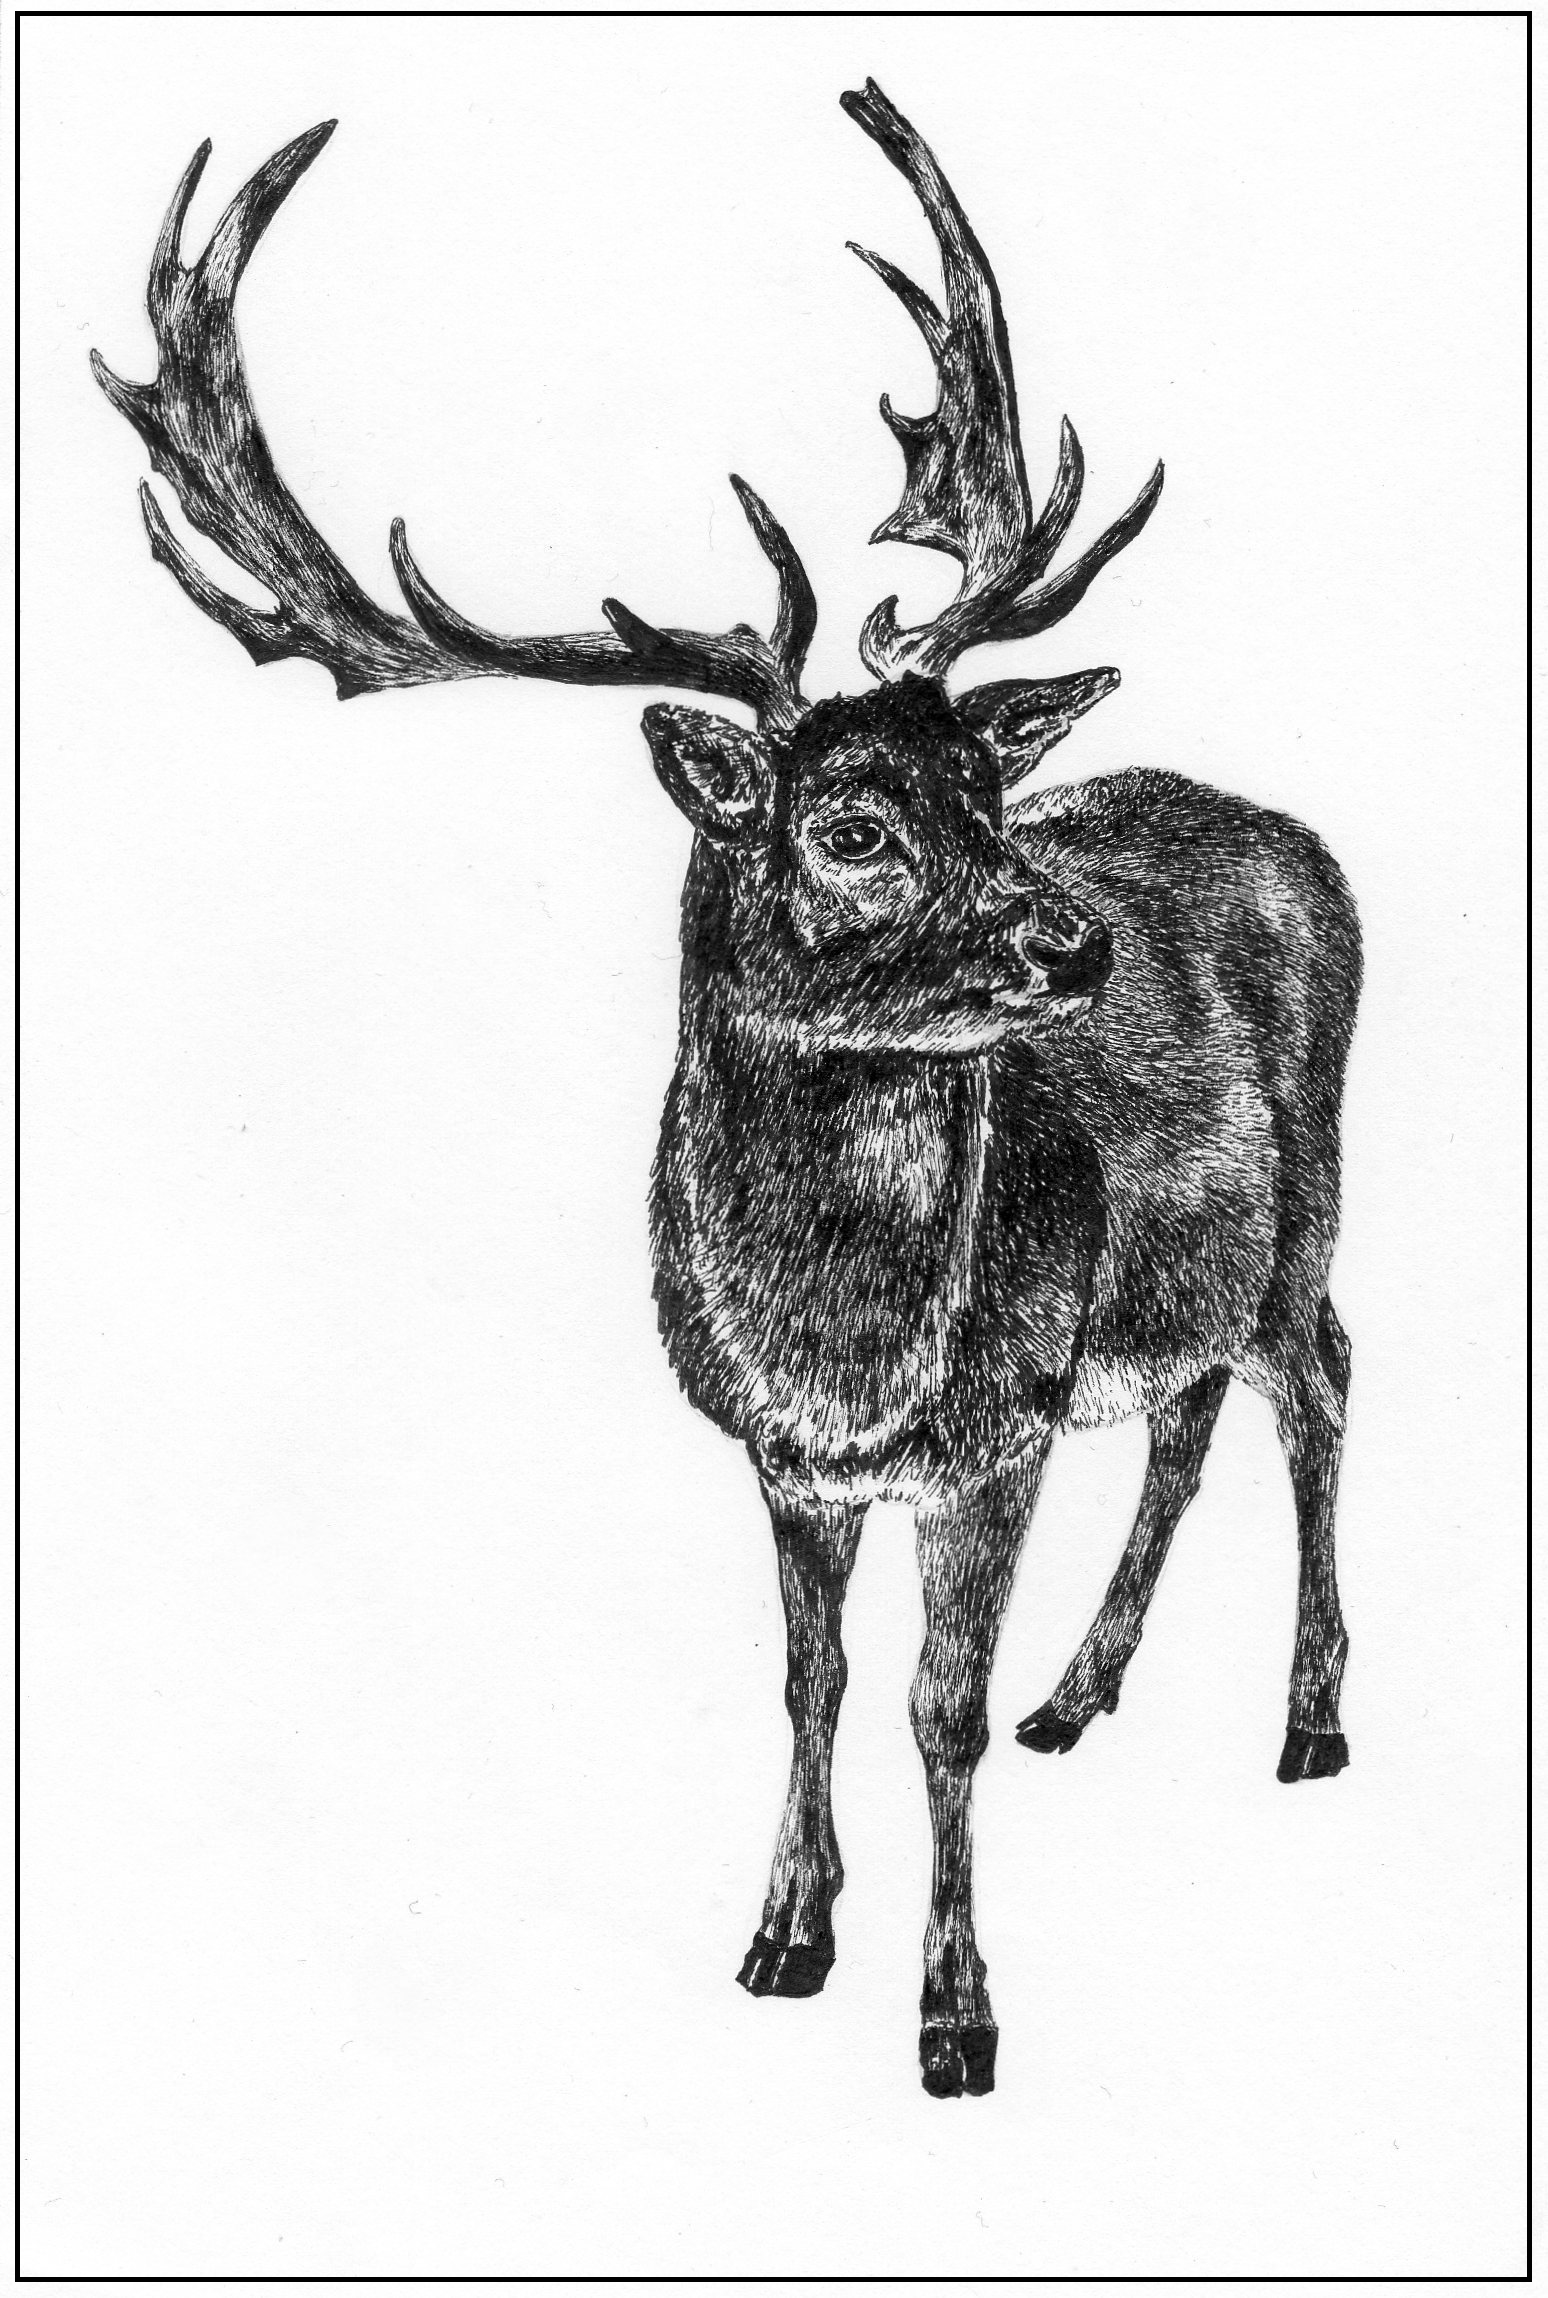 Drawn reindeer pen and ink Com  Four legs nickockenden